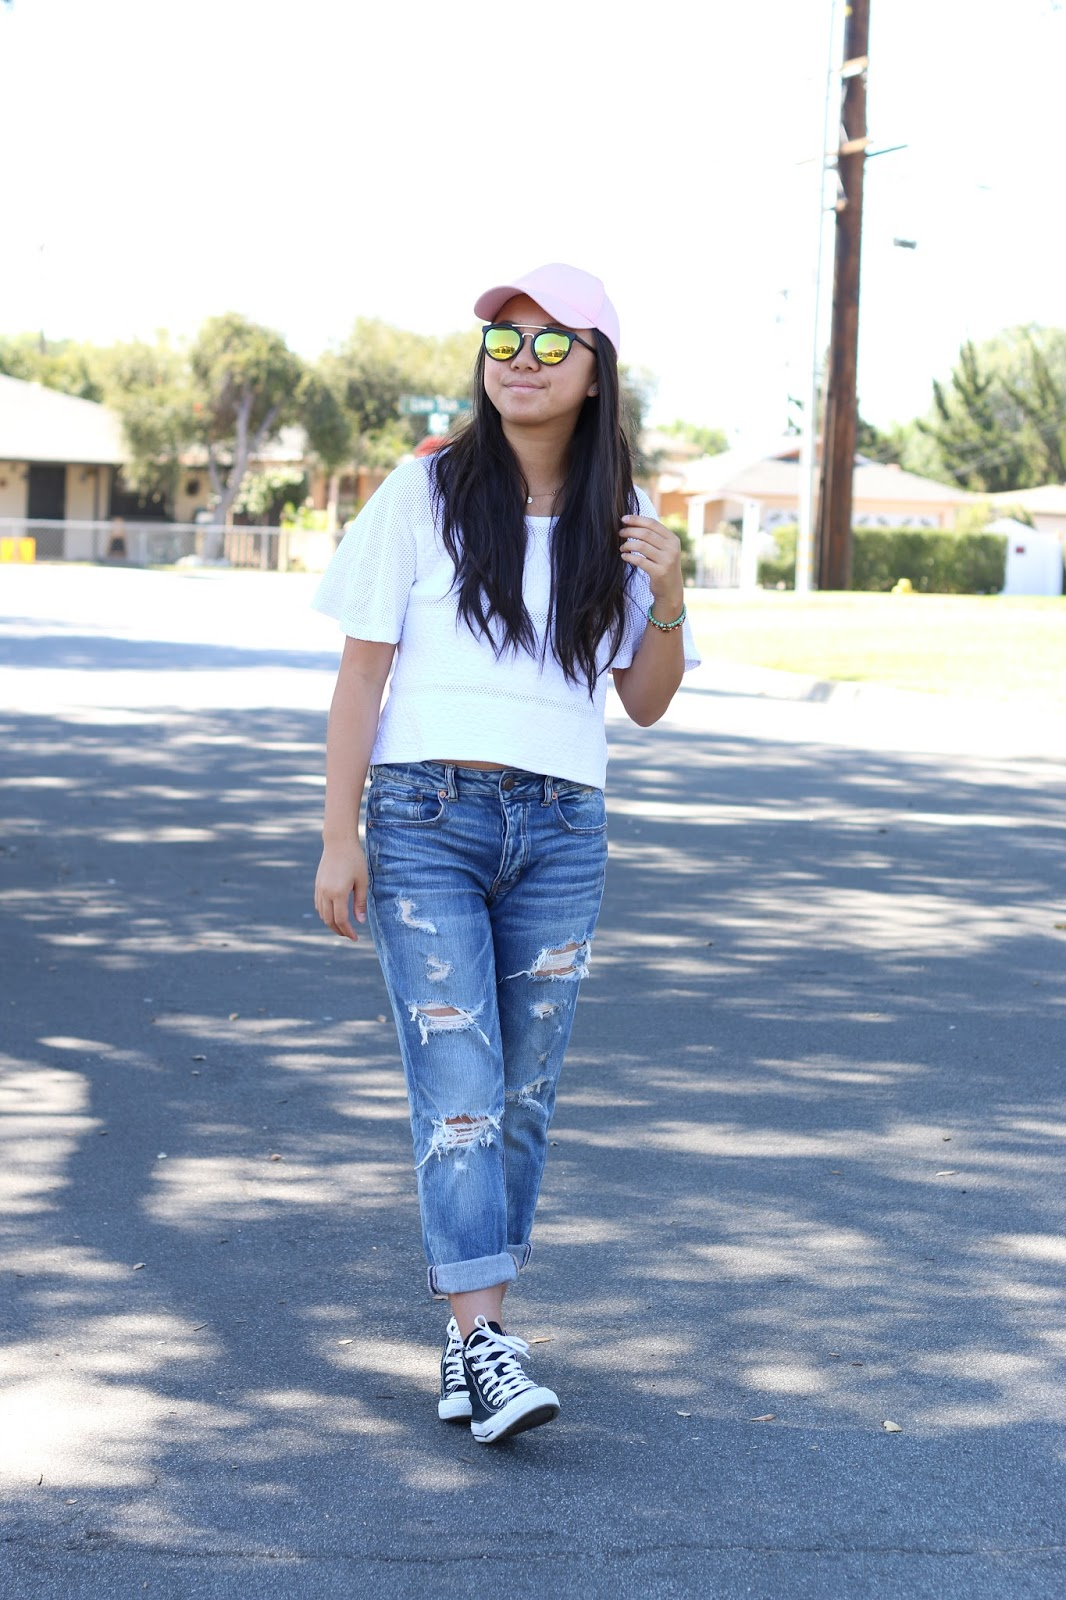 outfit of the day, outfit, style, american eagle, pink hat, fashion blogger